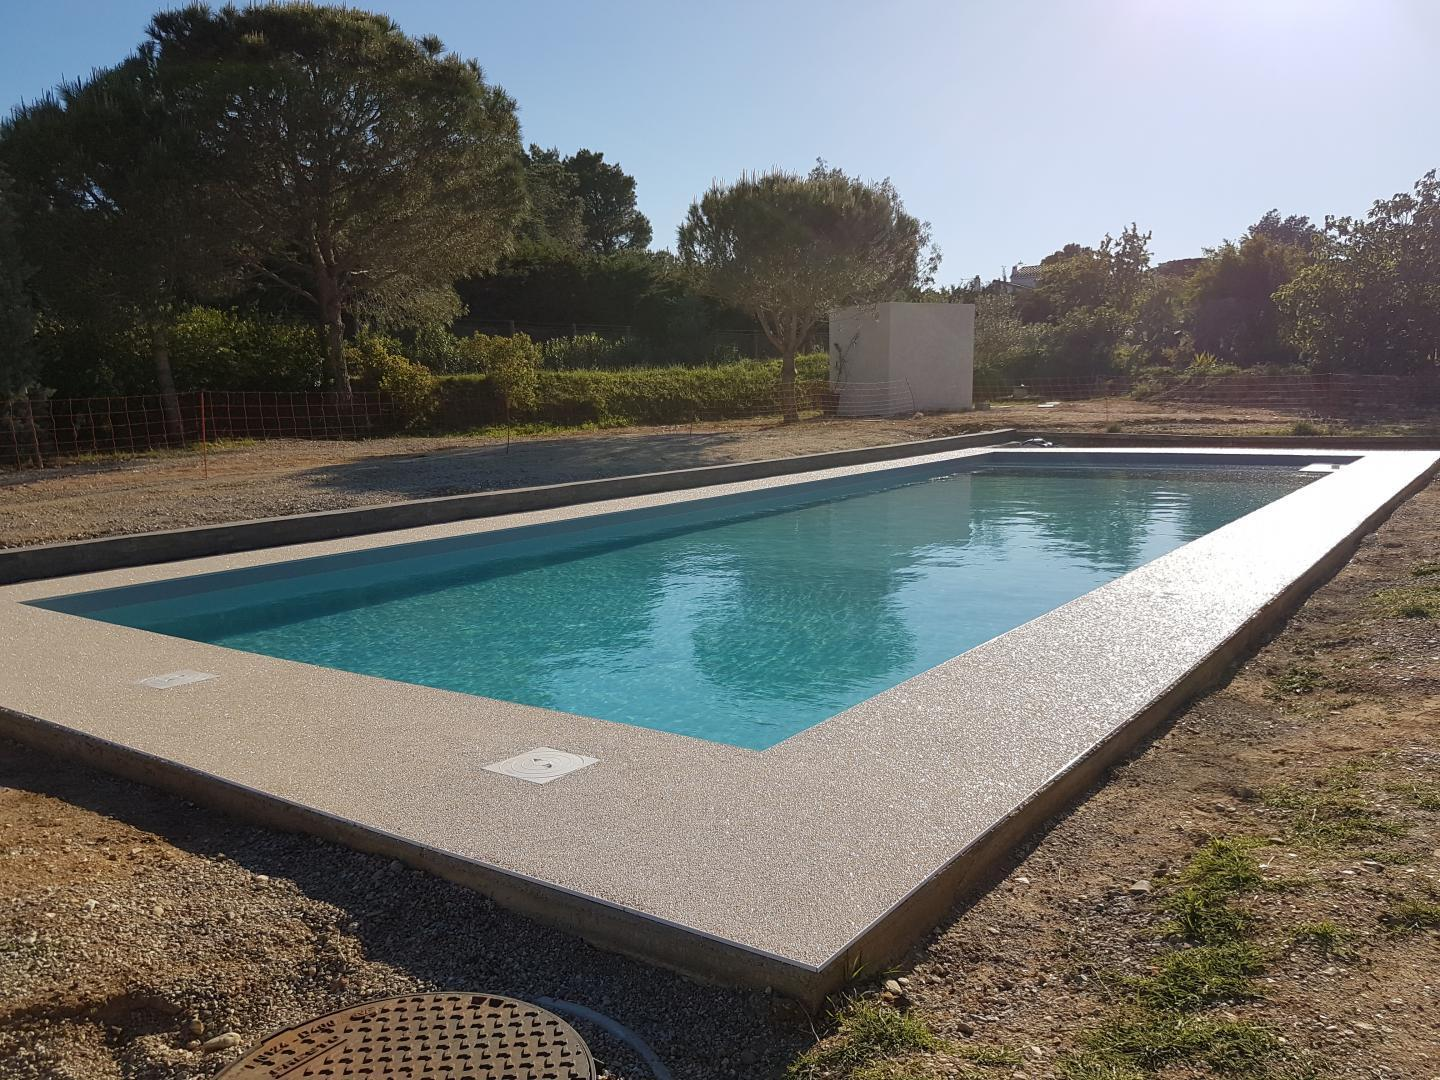 Bassin piscine inox perpignan maison design for Construction piscine inox